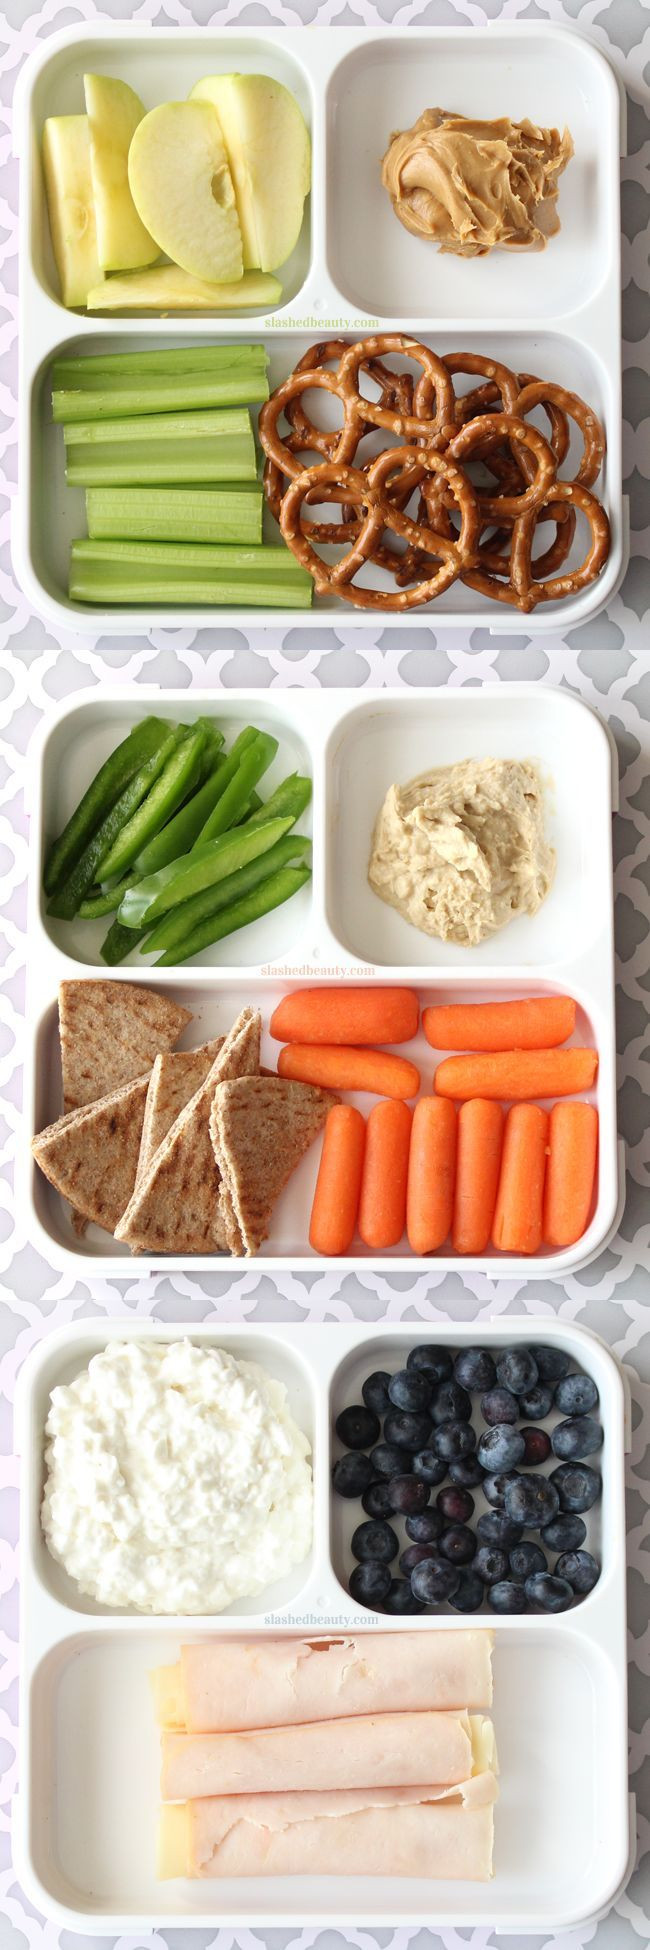 Simple Healthy Snacks  17 Best ideas about Healthy Snacks on Pinterest